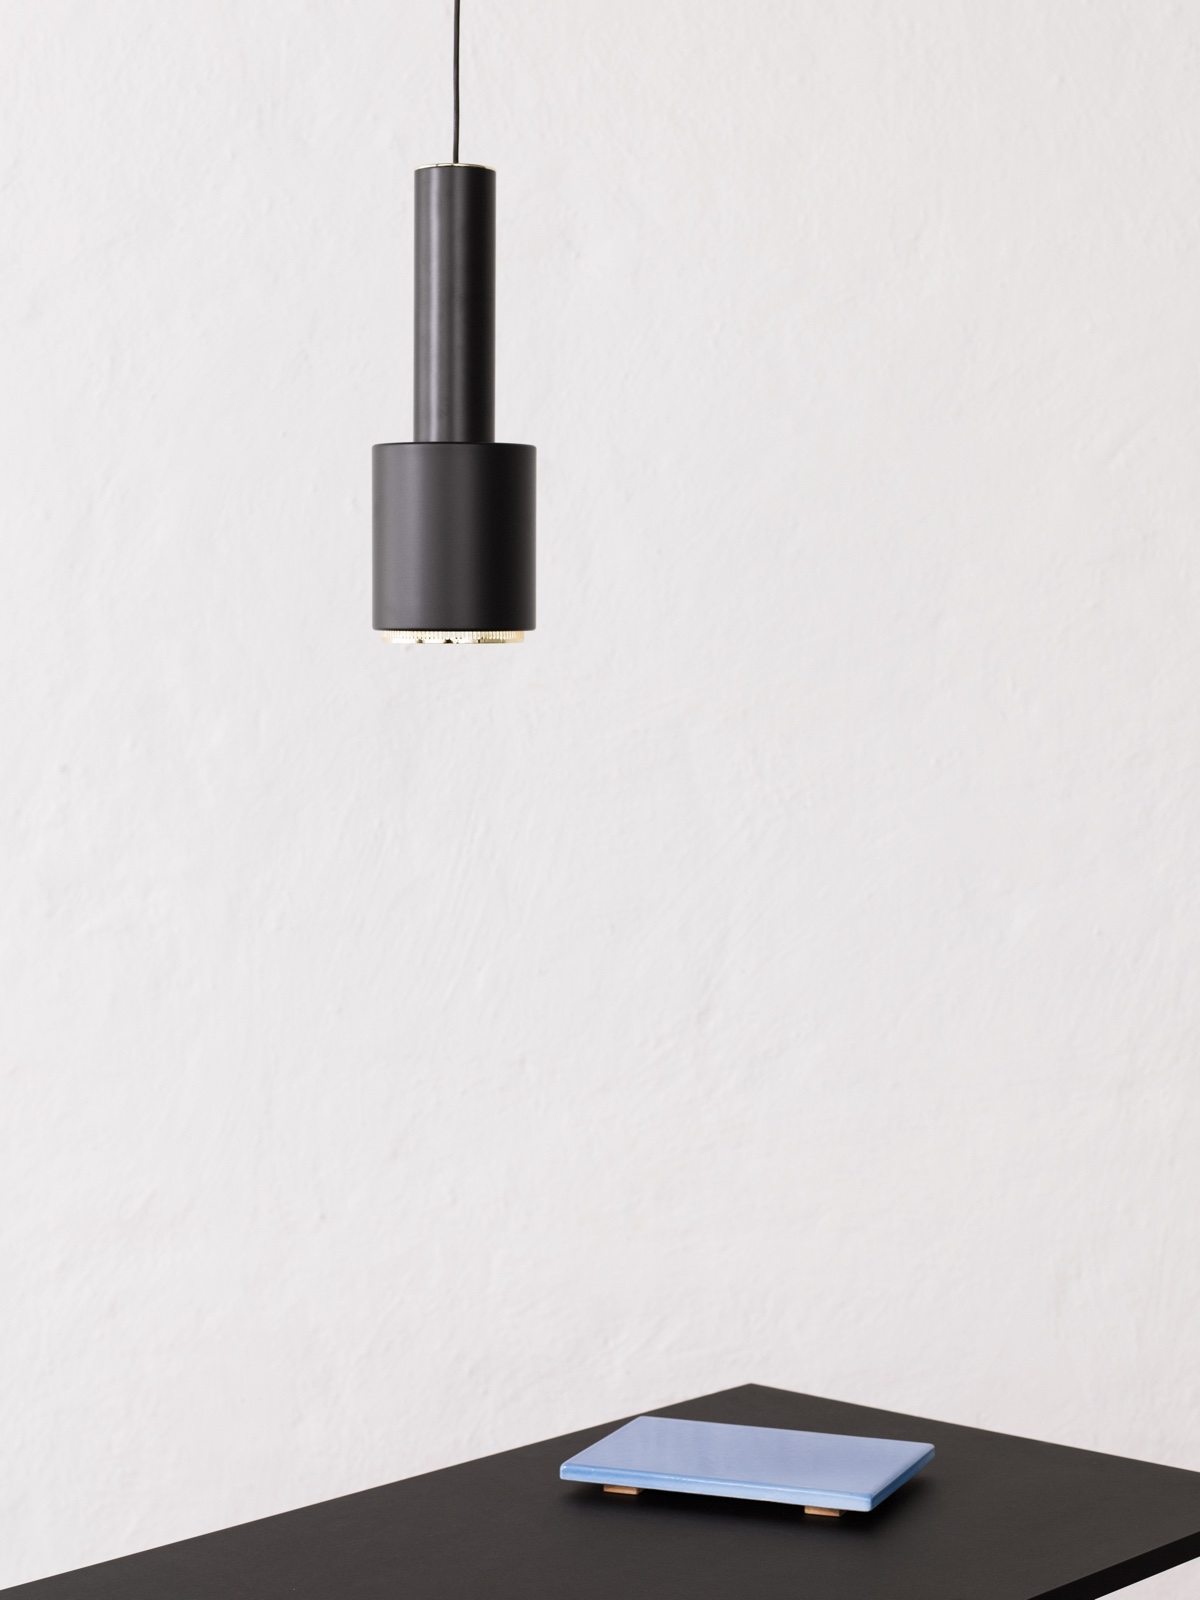 Pendant Light A110, black painted steel shade, designed in 1952. Photo by Osma Harvilahti. Also known as the Hand Grenade lamp, it was designed for the home of the Finnish Engineers' Association (designed by Aalto between 1948 and 1953).